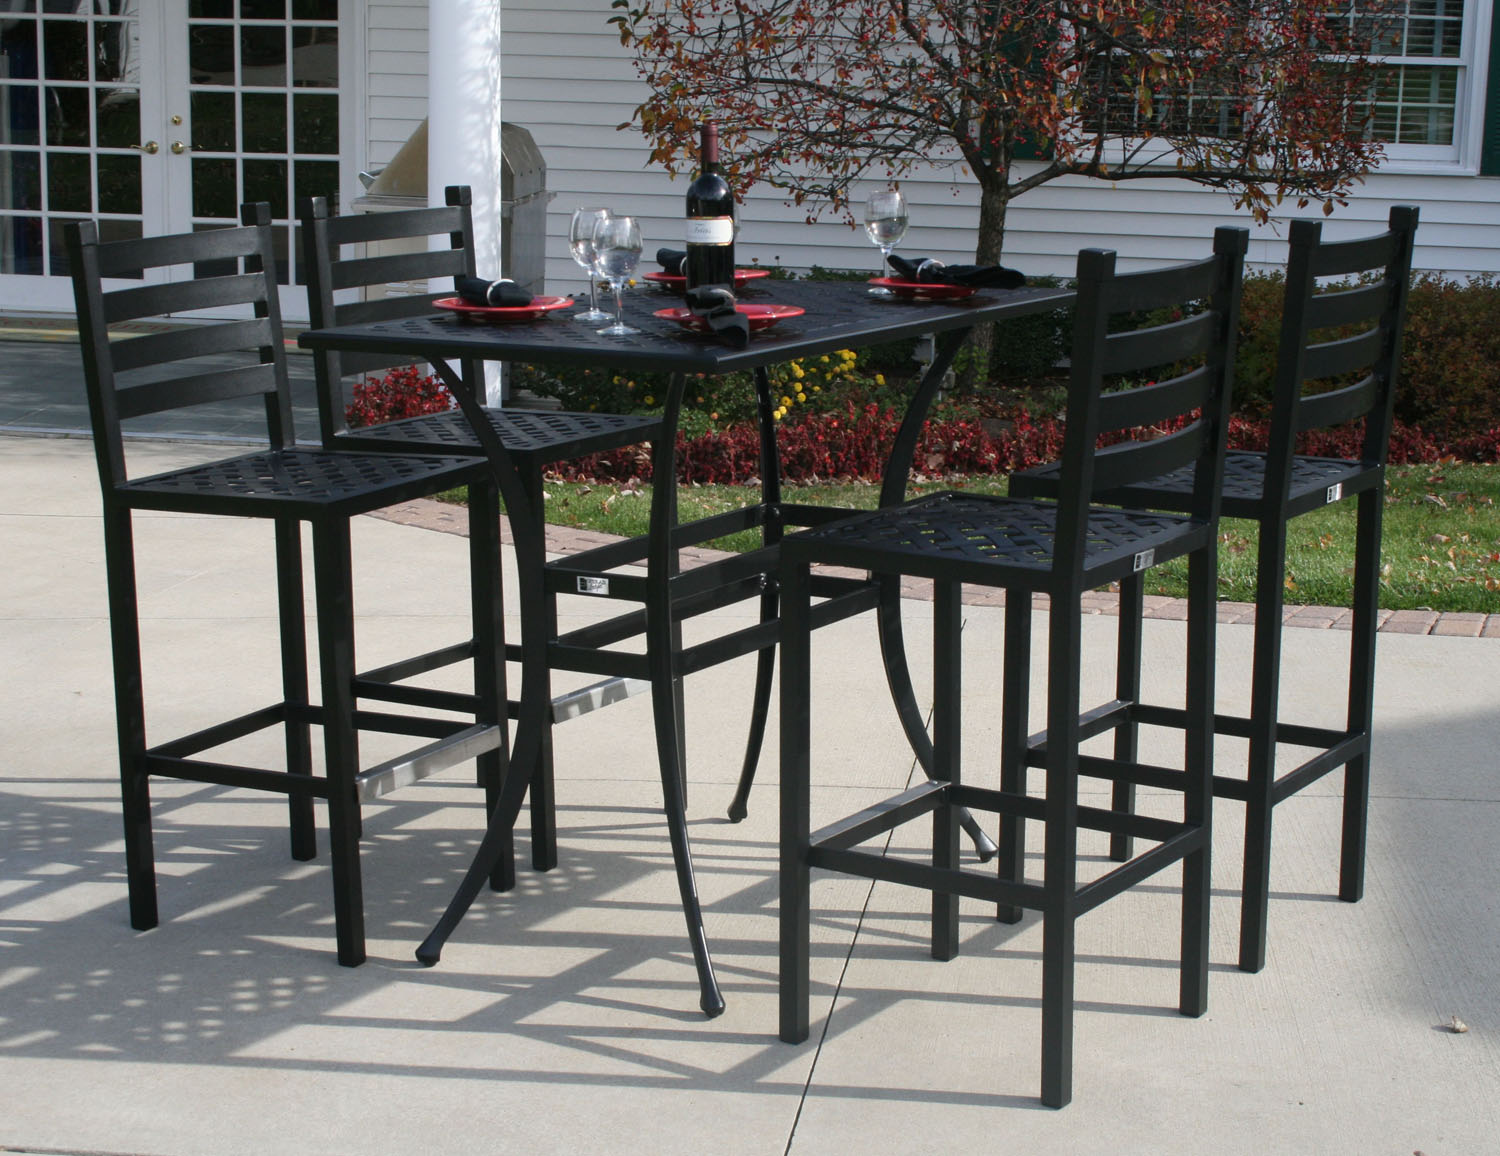 Ansley Luxury 4Person All Welded Cast Aluminum Patio Furniture Bar